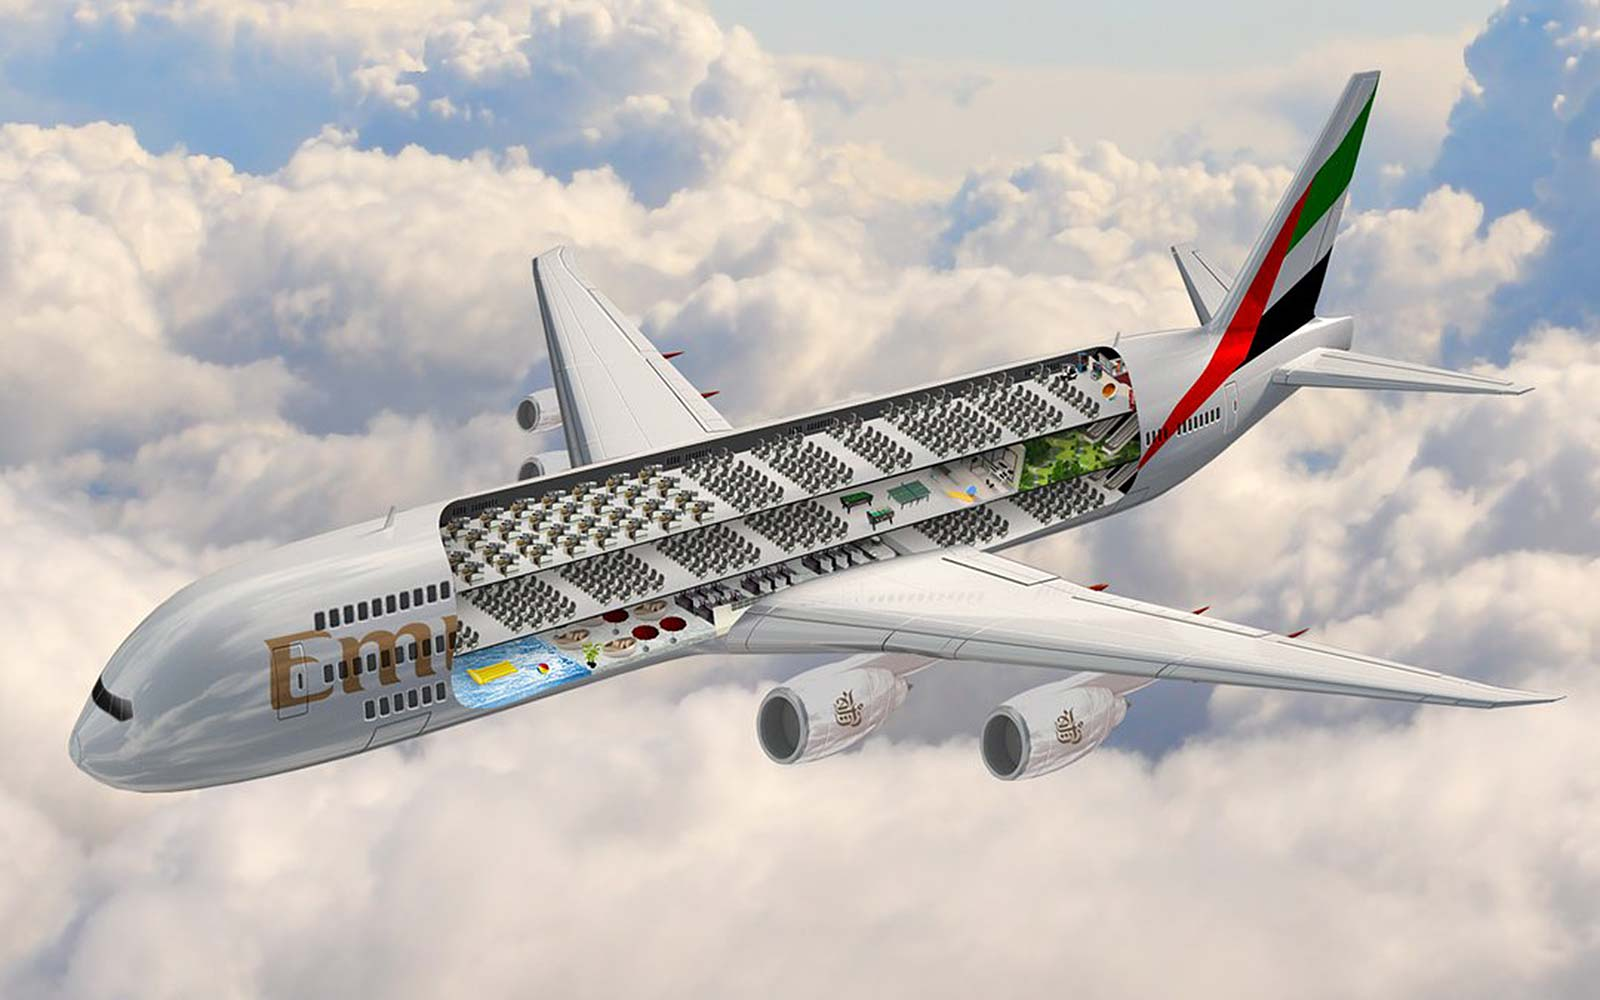 Emirates Wants to Build an Airplane with a Swimming Pool and Gym Onboard